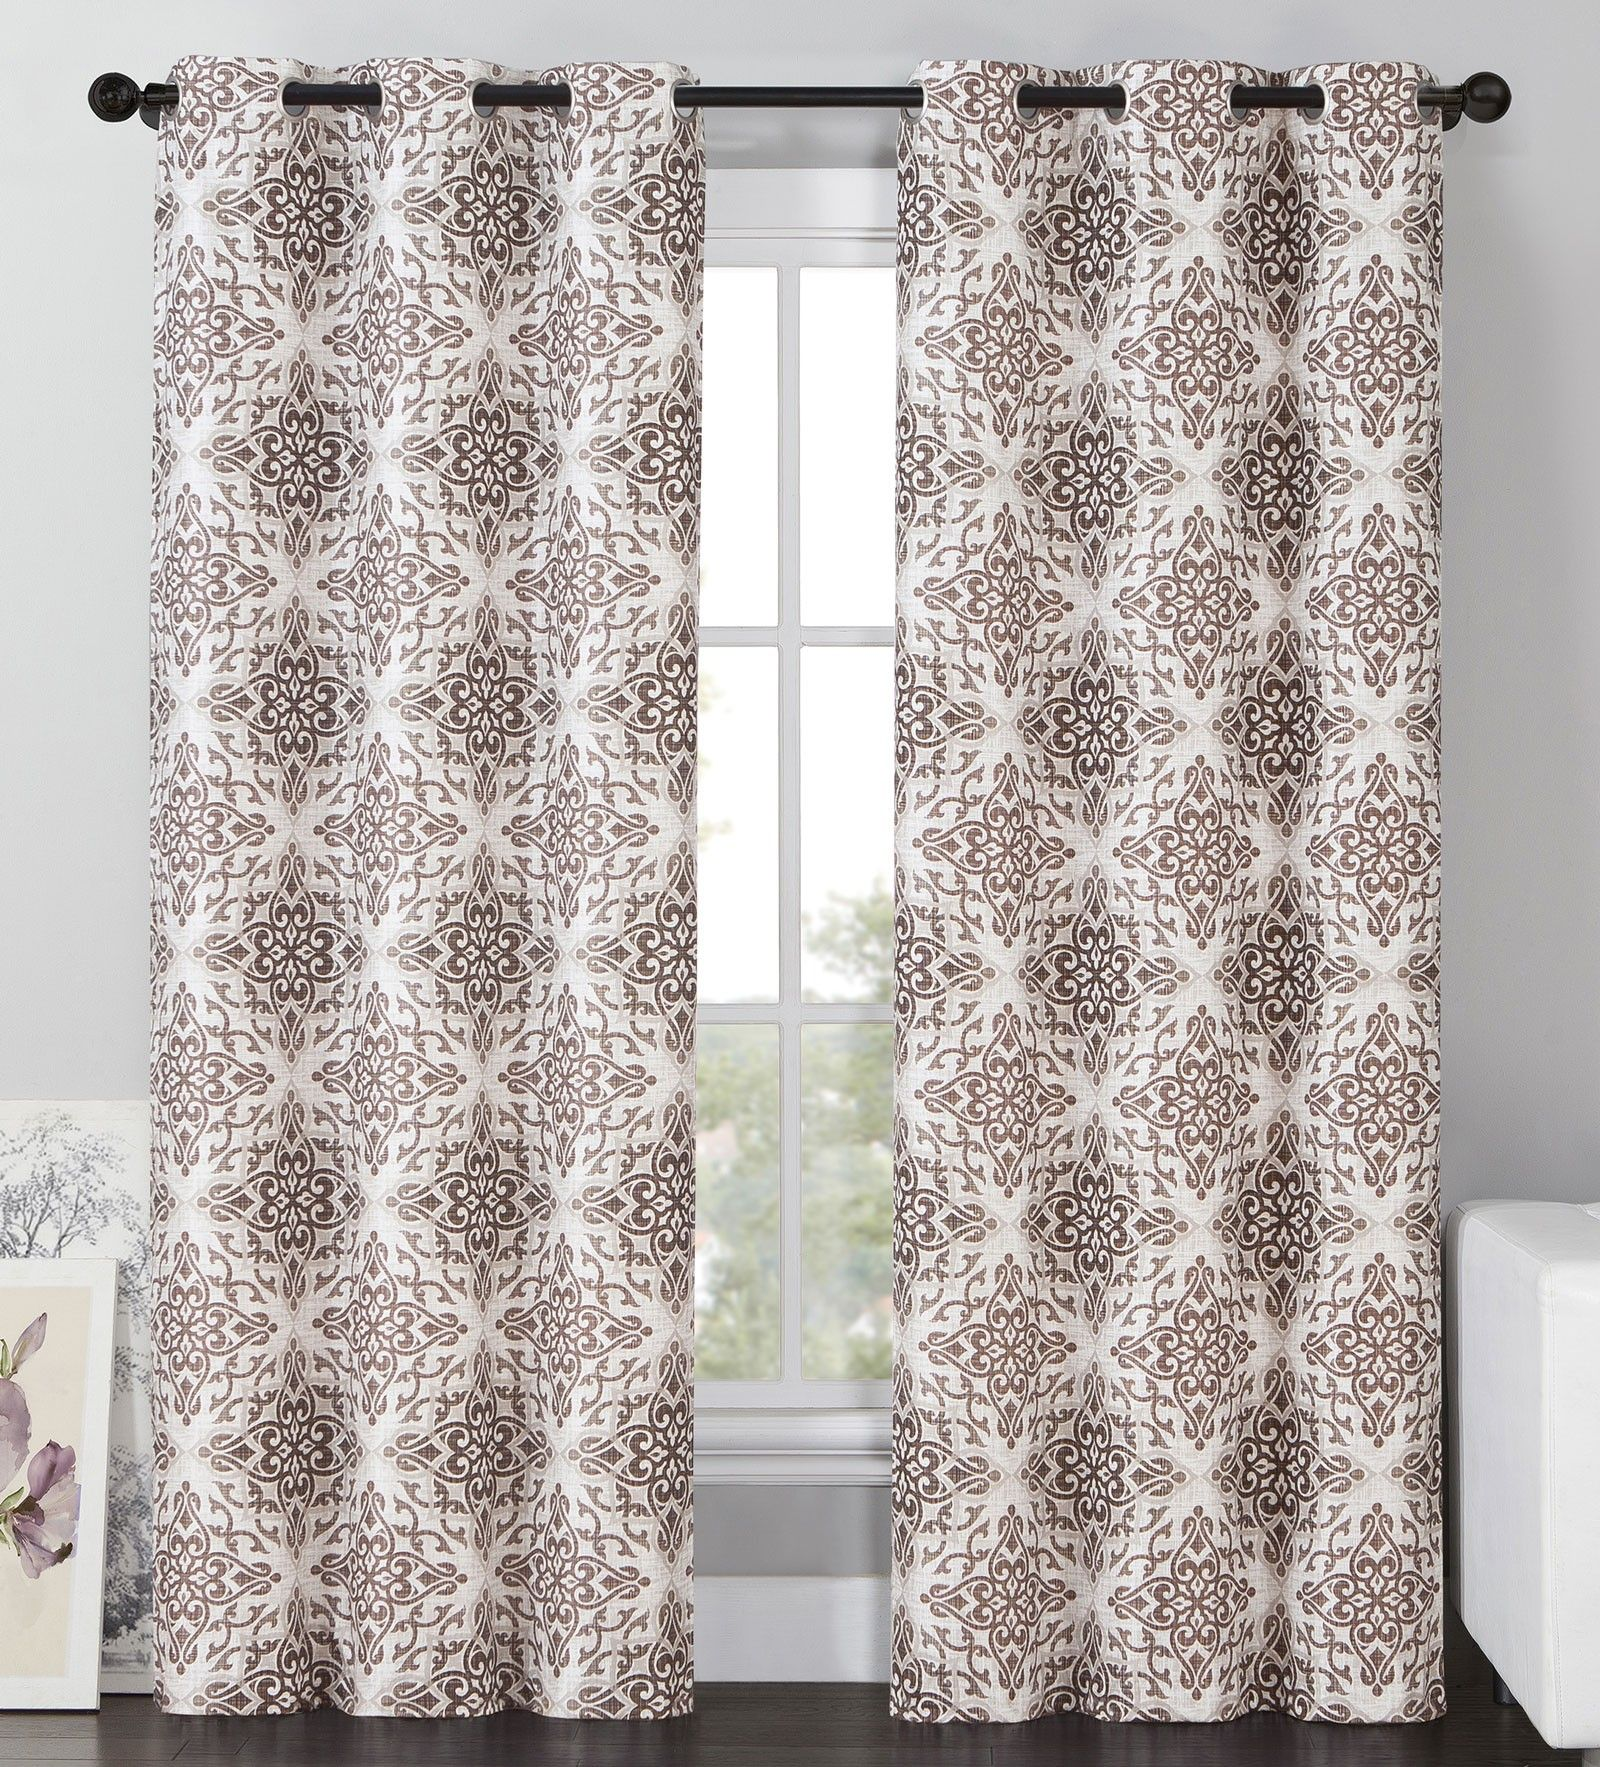 panels turn space design of curtains an curtain damask these wide any oasis ideas luxurious into inch